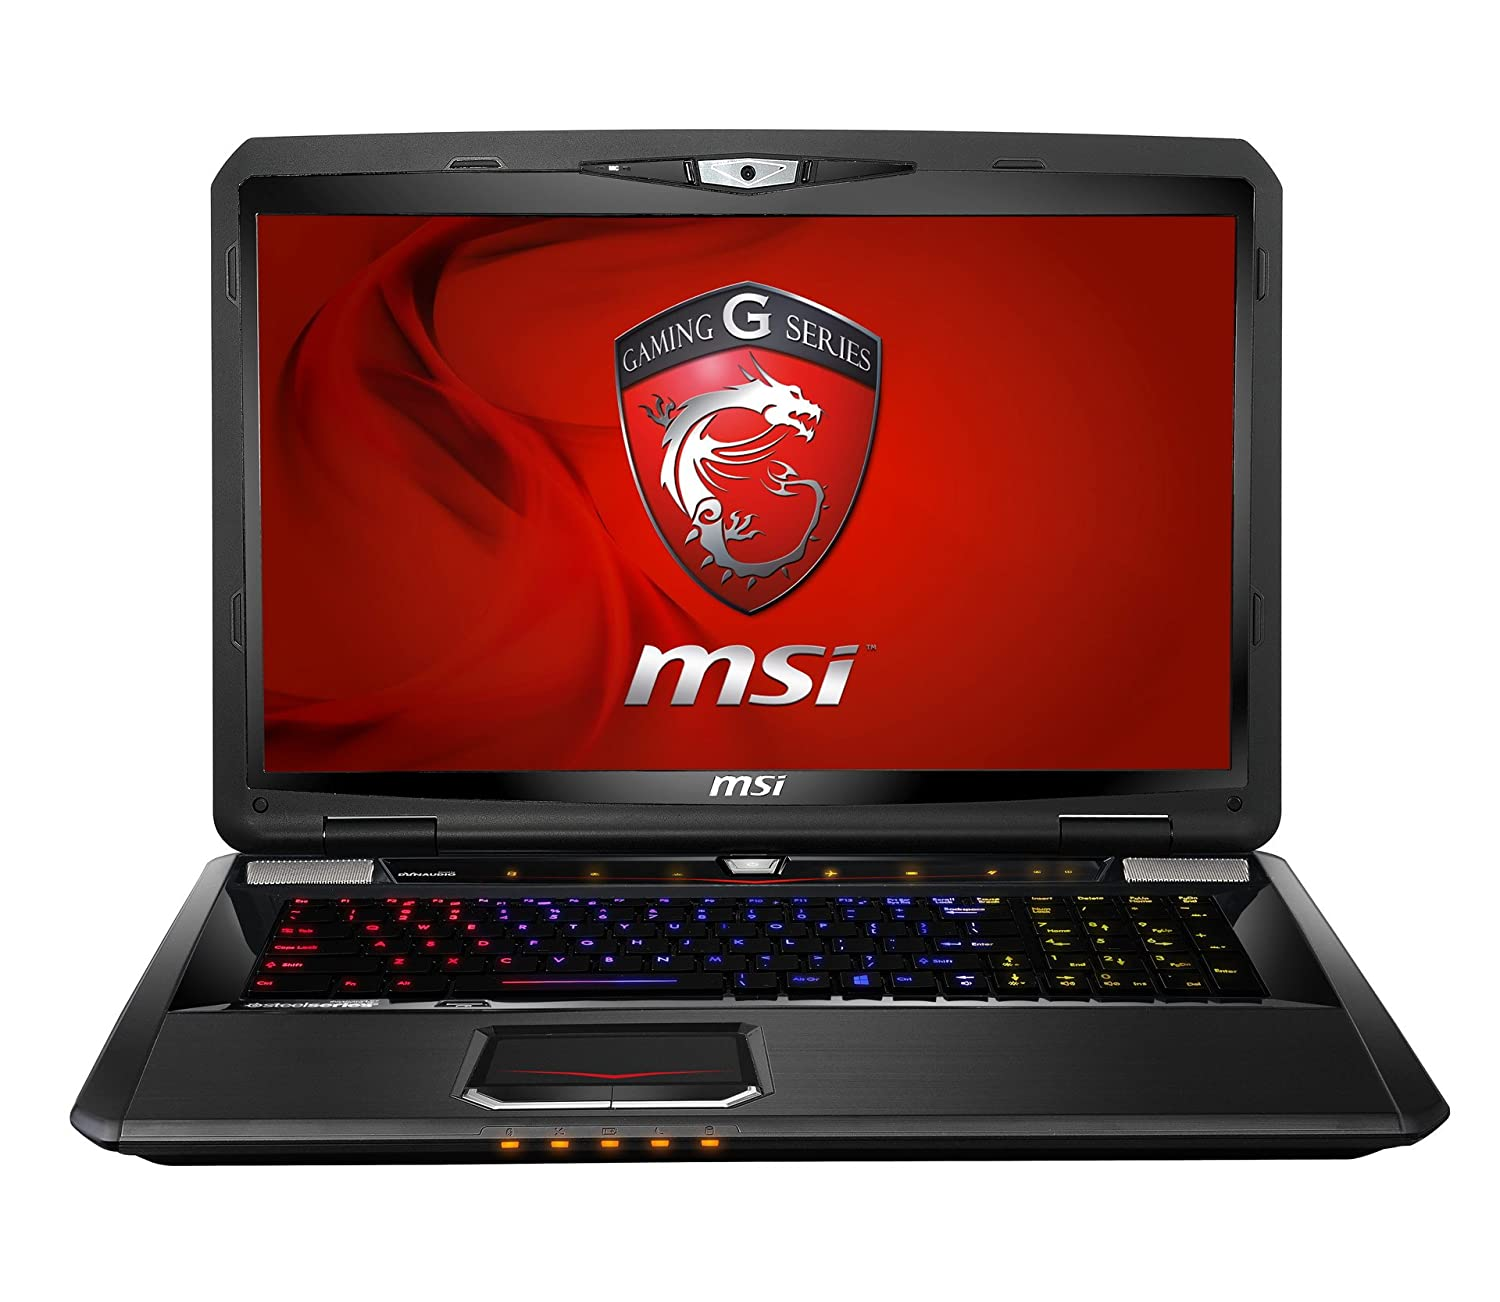 Amazon MSI G Series GT70 2OC 065US 17 3 Inch Laptop Black No Touchscreen puters & Accessories